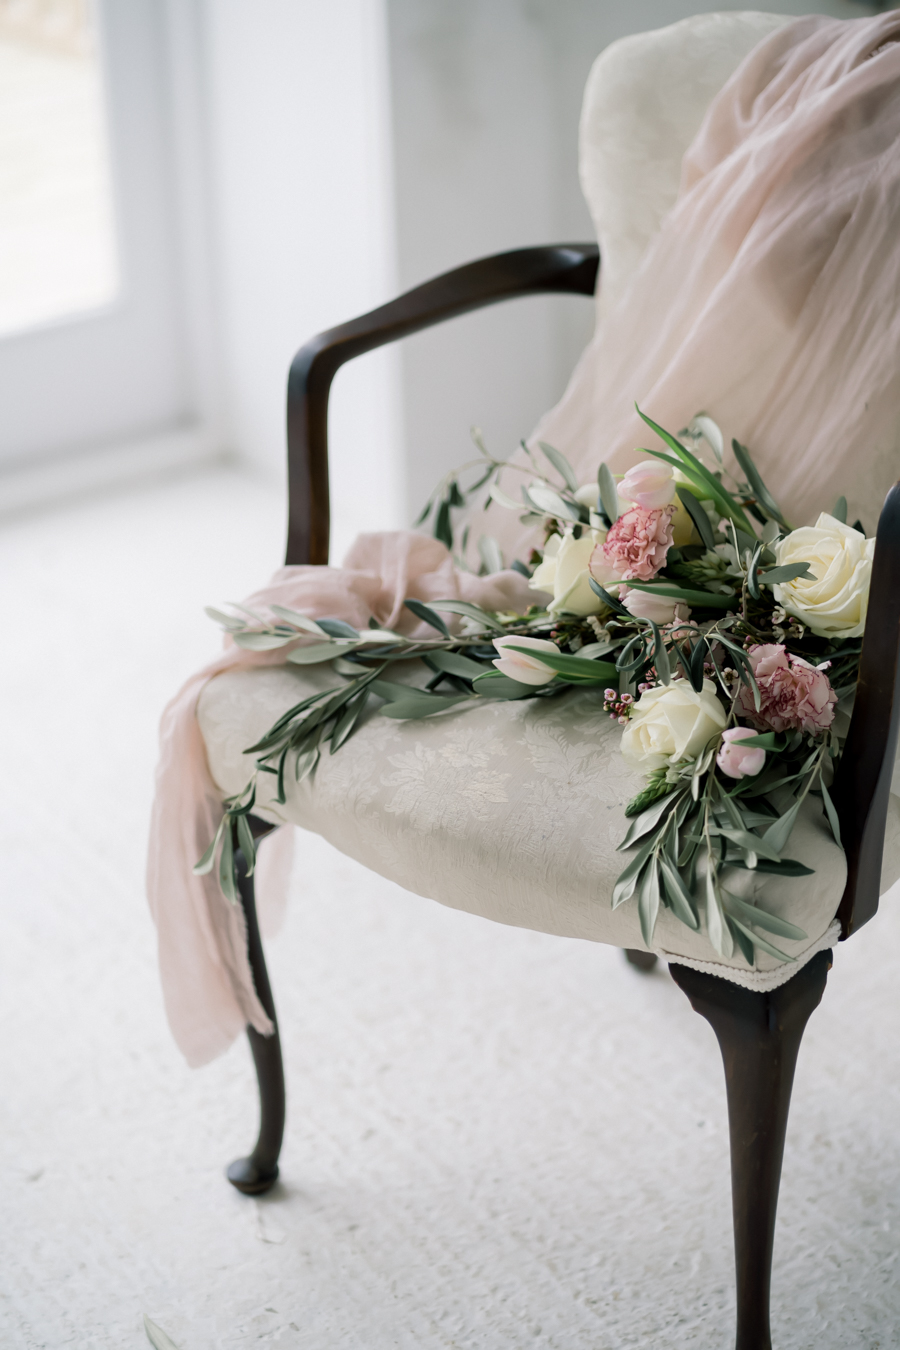 Spring blossom wedding style inspiration and ideas with Chloe Ely Photography at Barton Court (29)